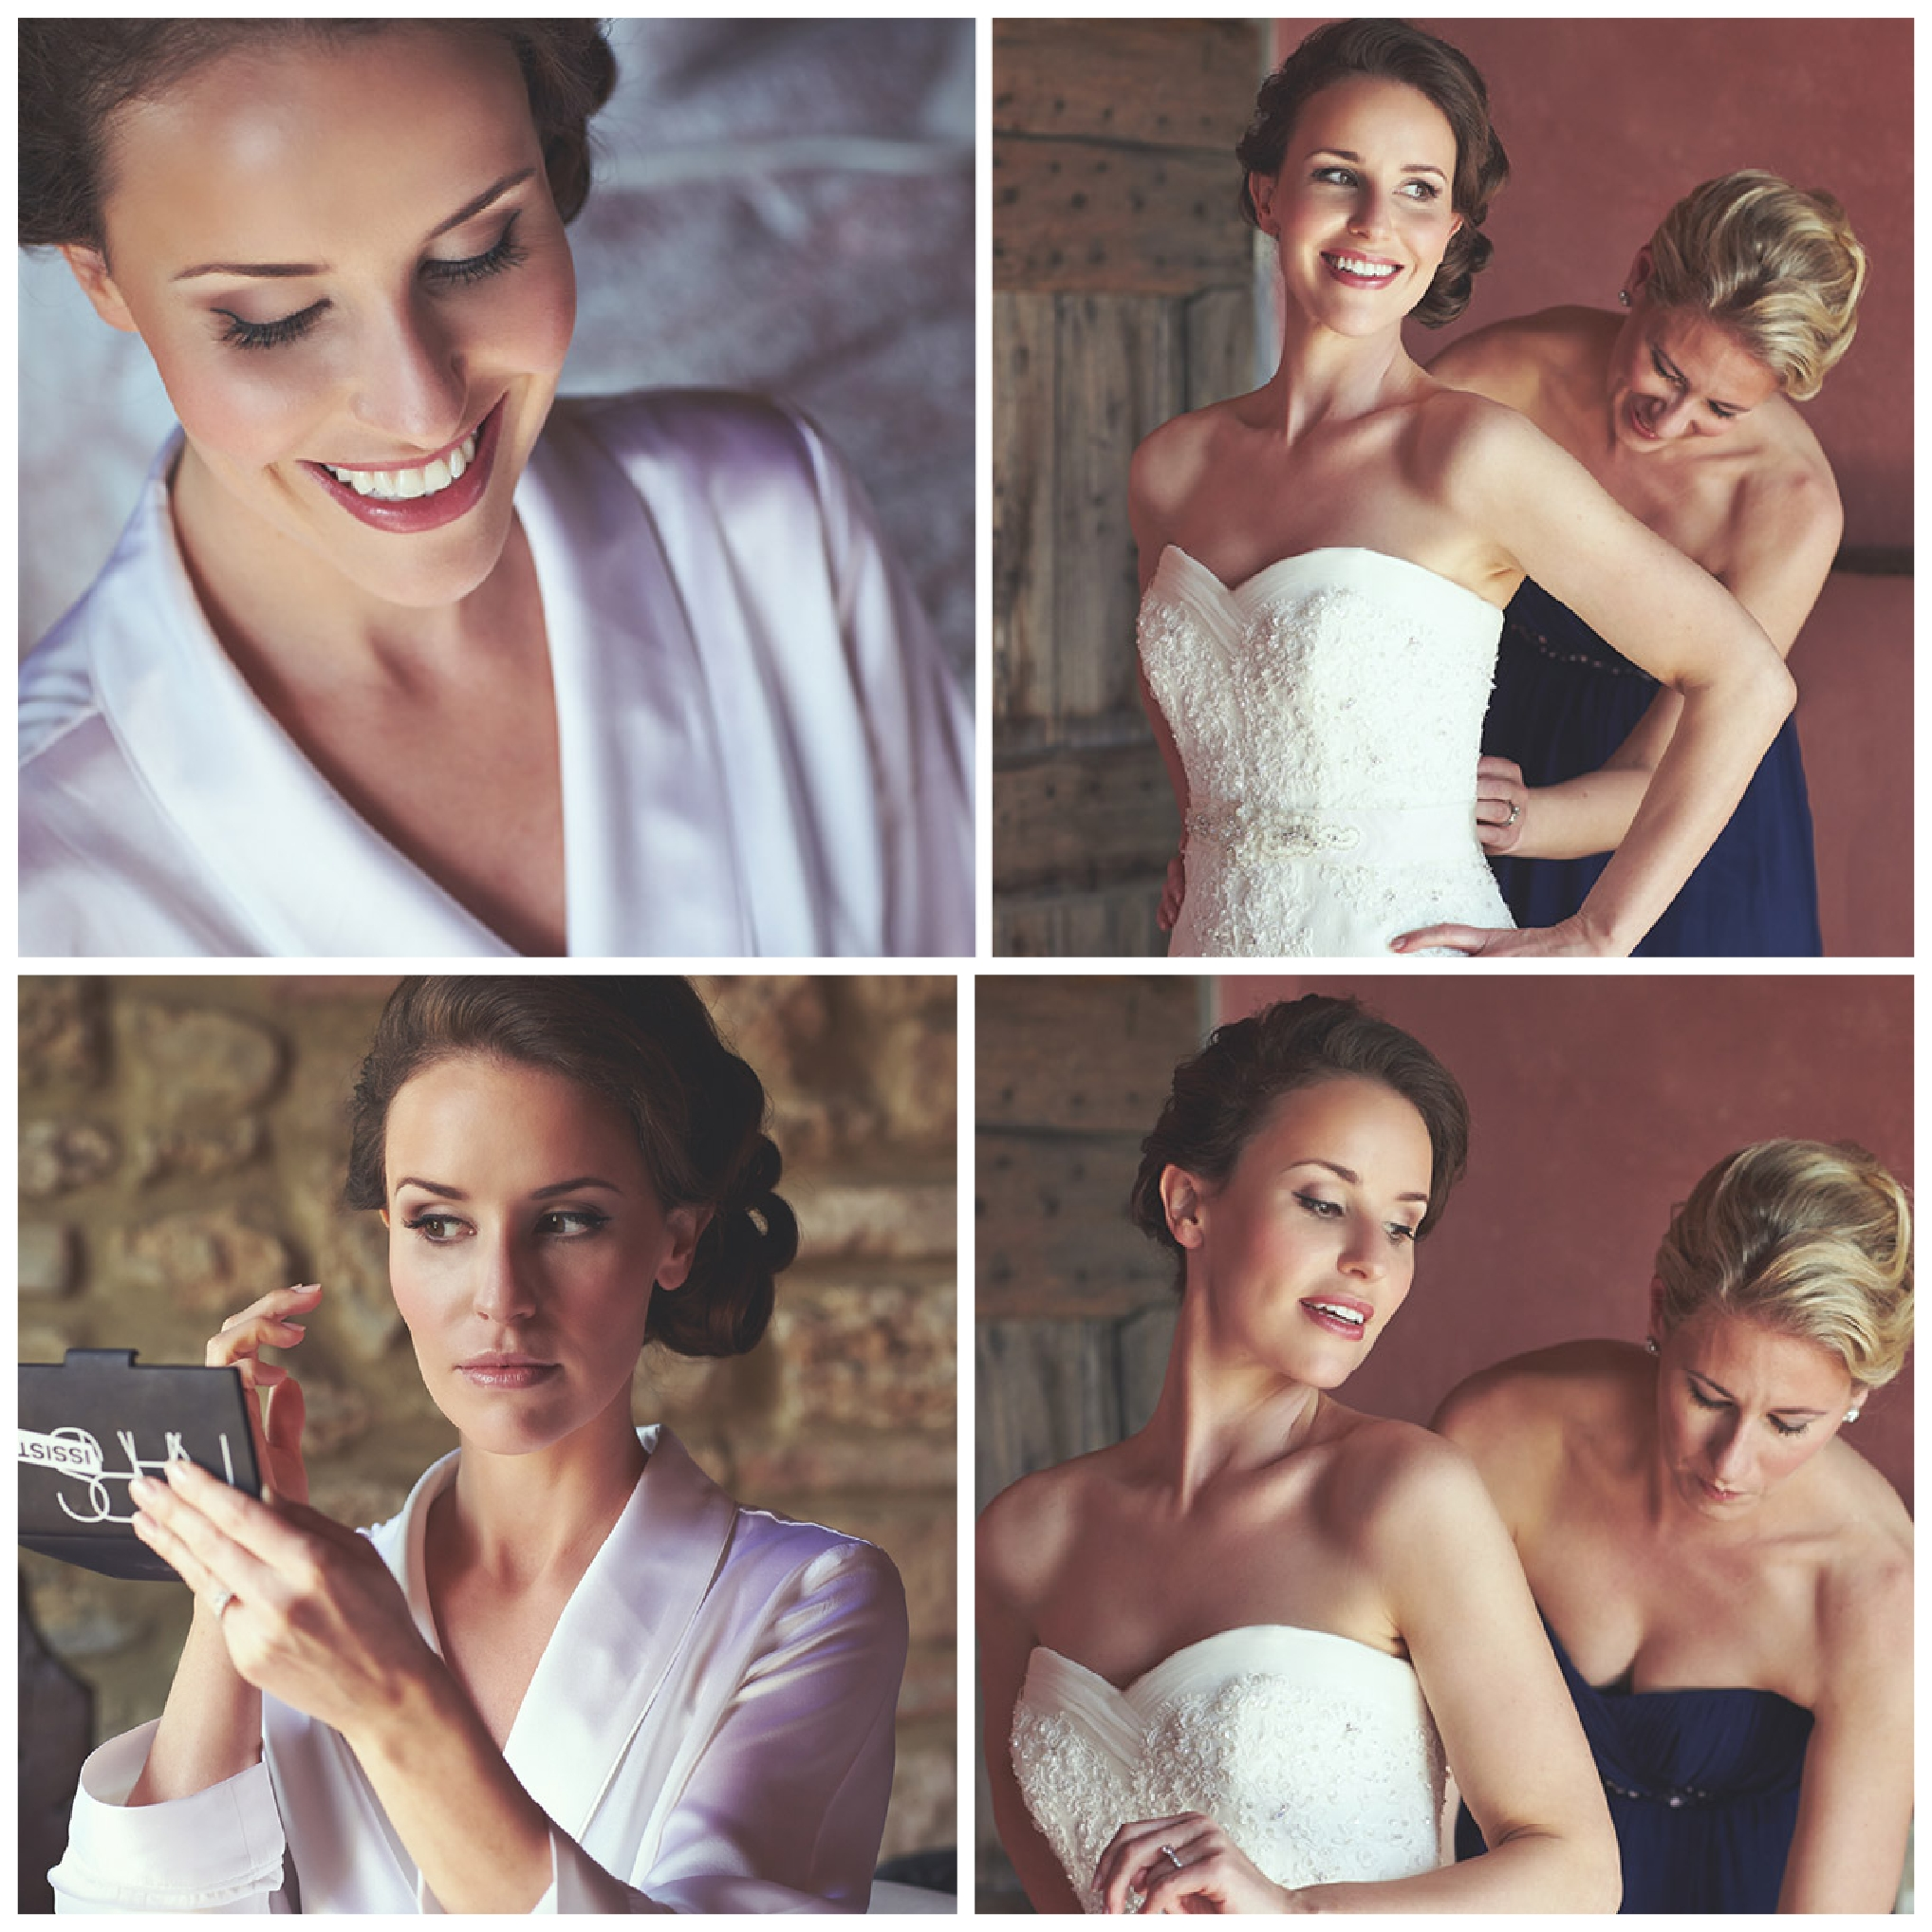 bridal makeup and hairstylist in rome, italy and your location.